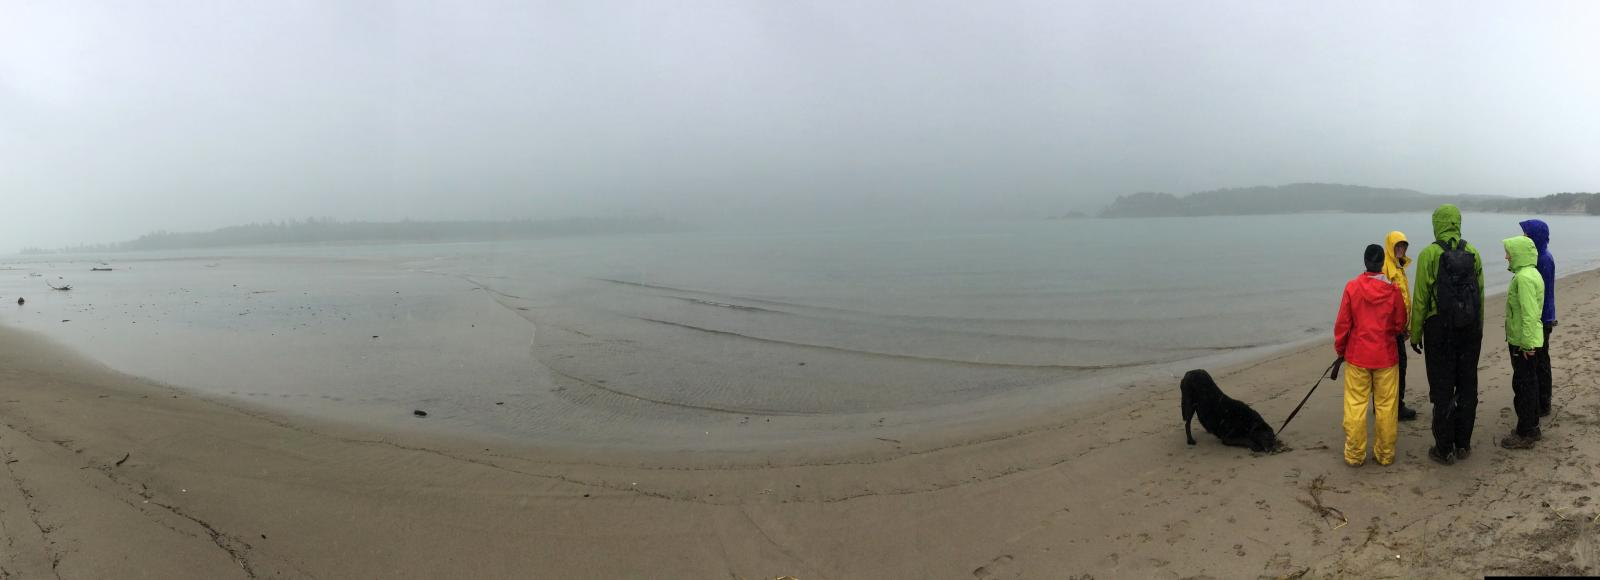 A panorama at the right of which stand six people and a dog looking out over a cloudy, possibly rainy, Sand Lake.